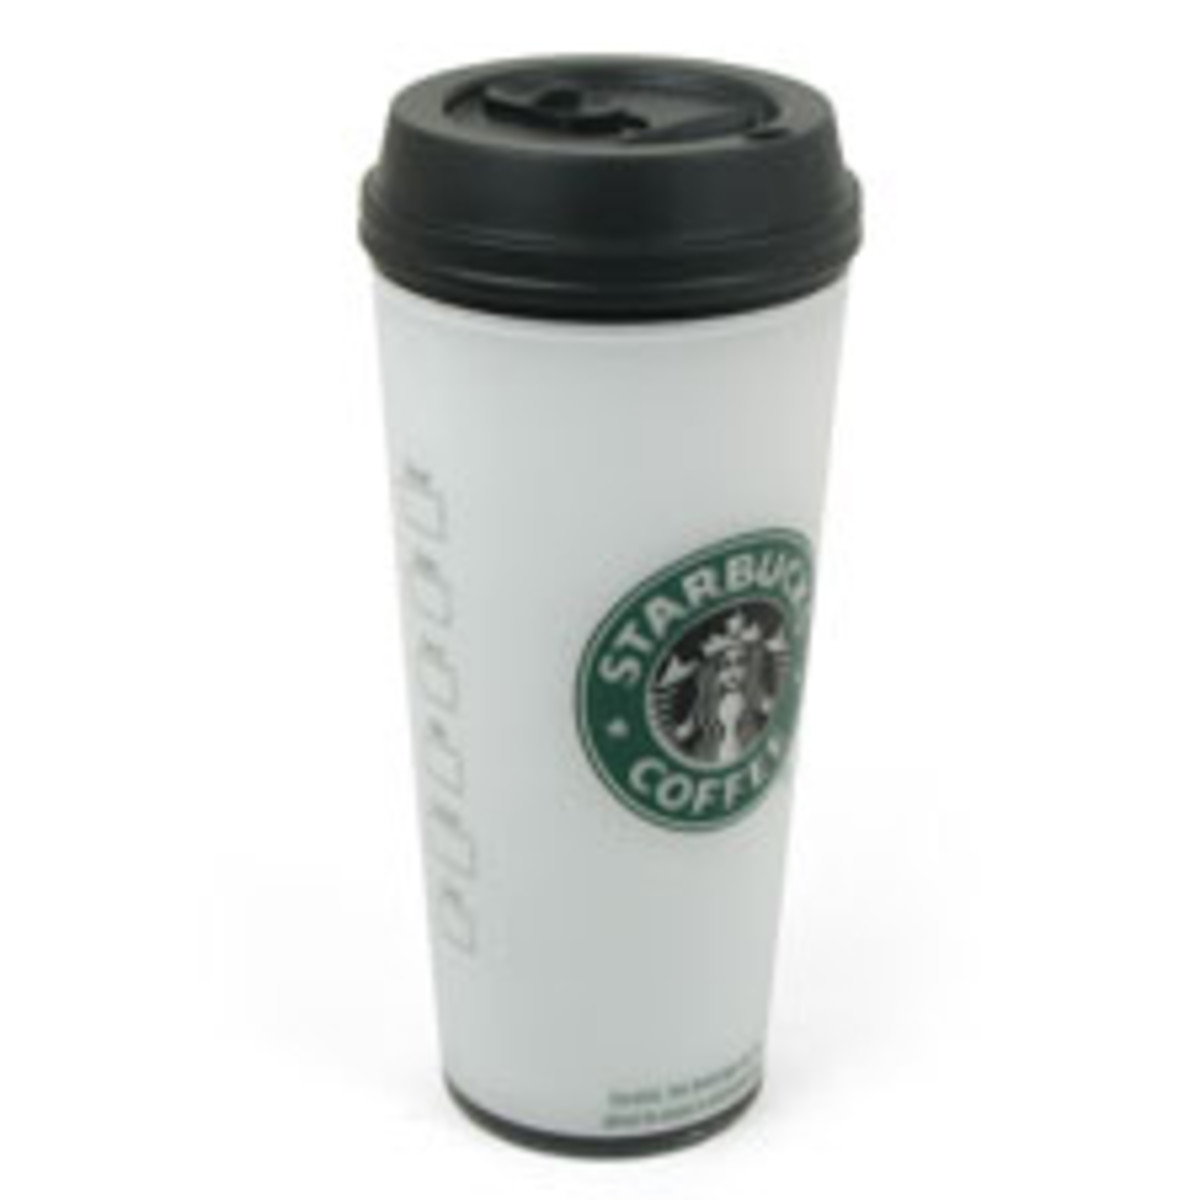 starbucks_travel_mug